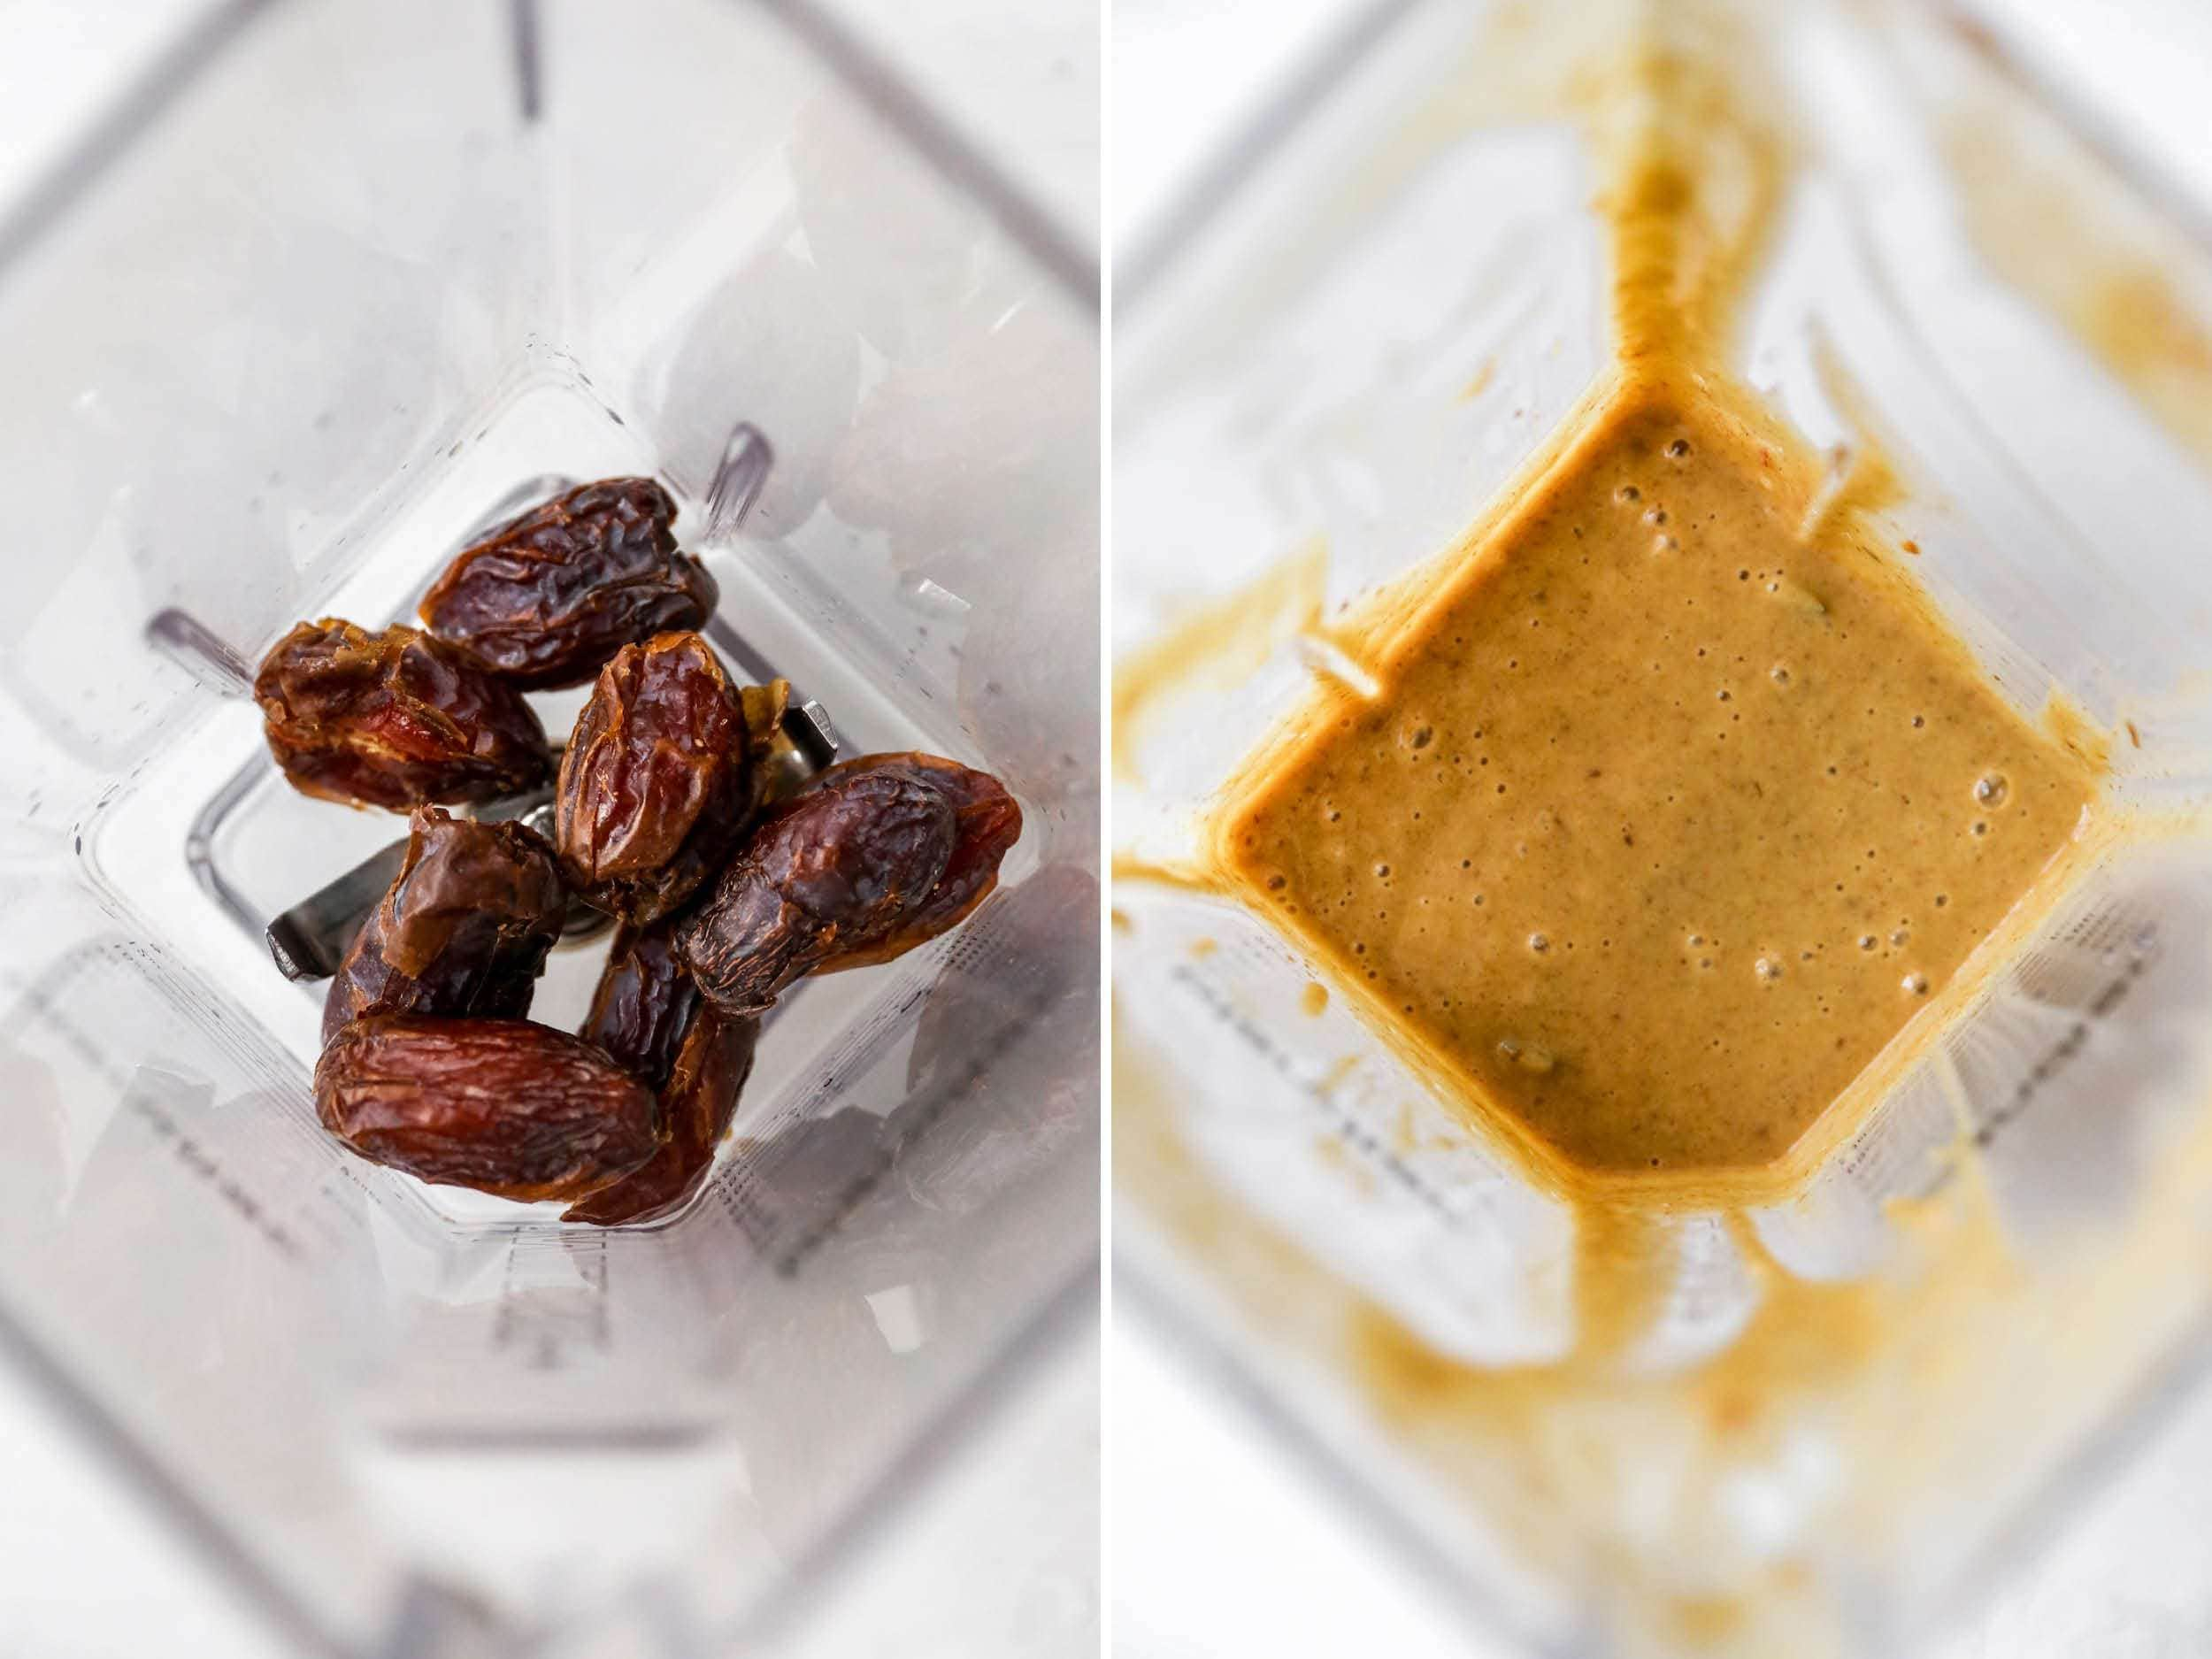 Side by side photo of a blender with dates and then the dates blended with water.